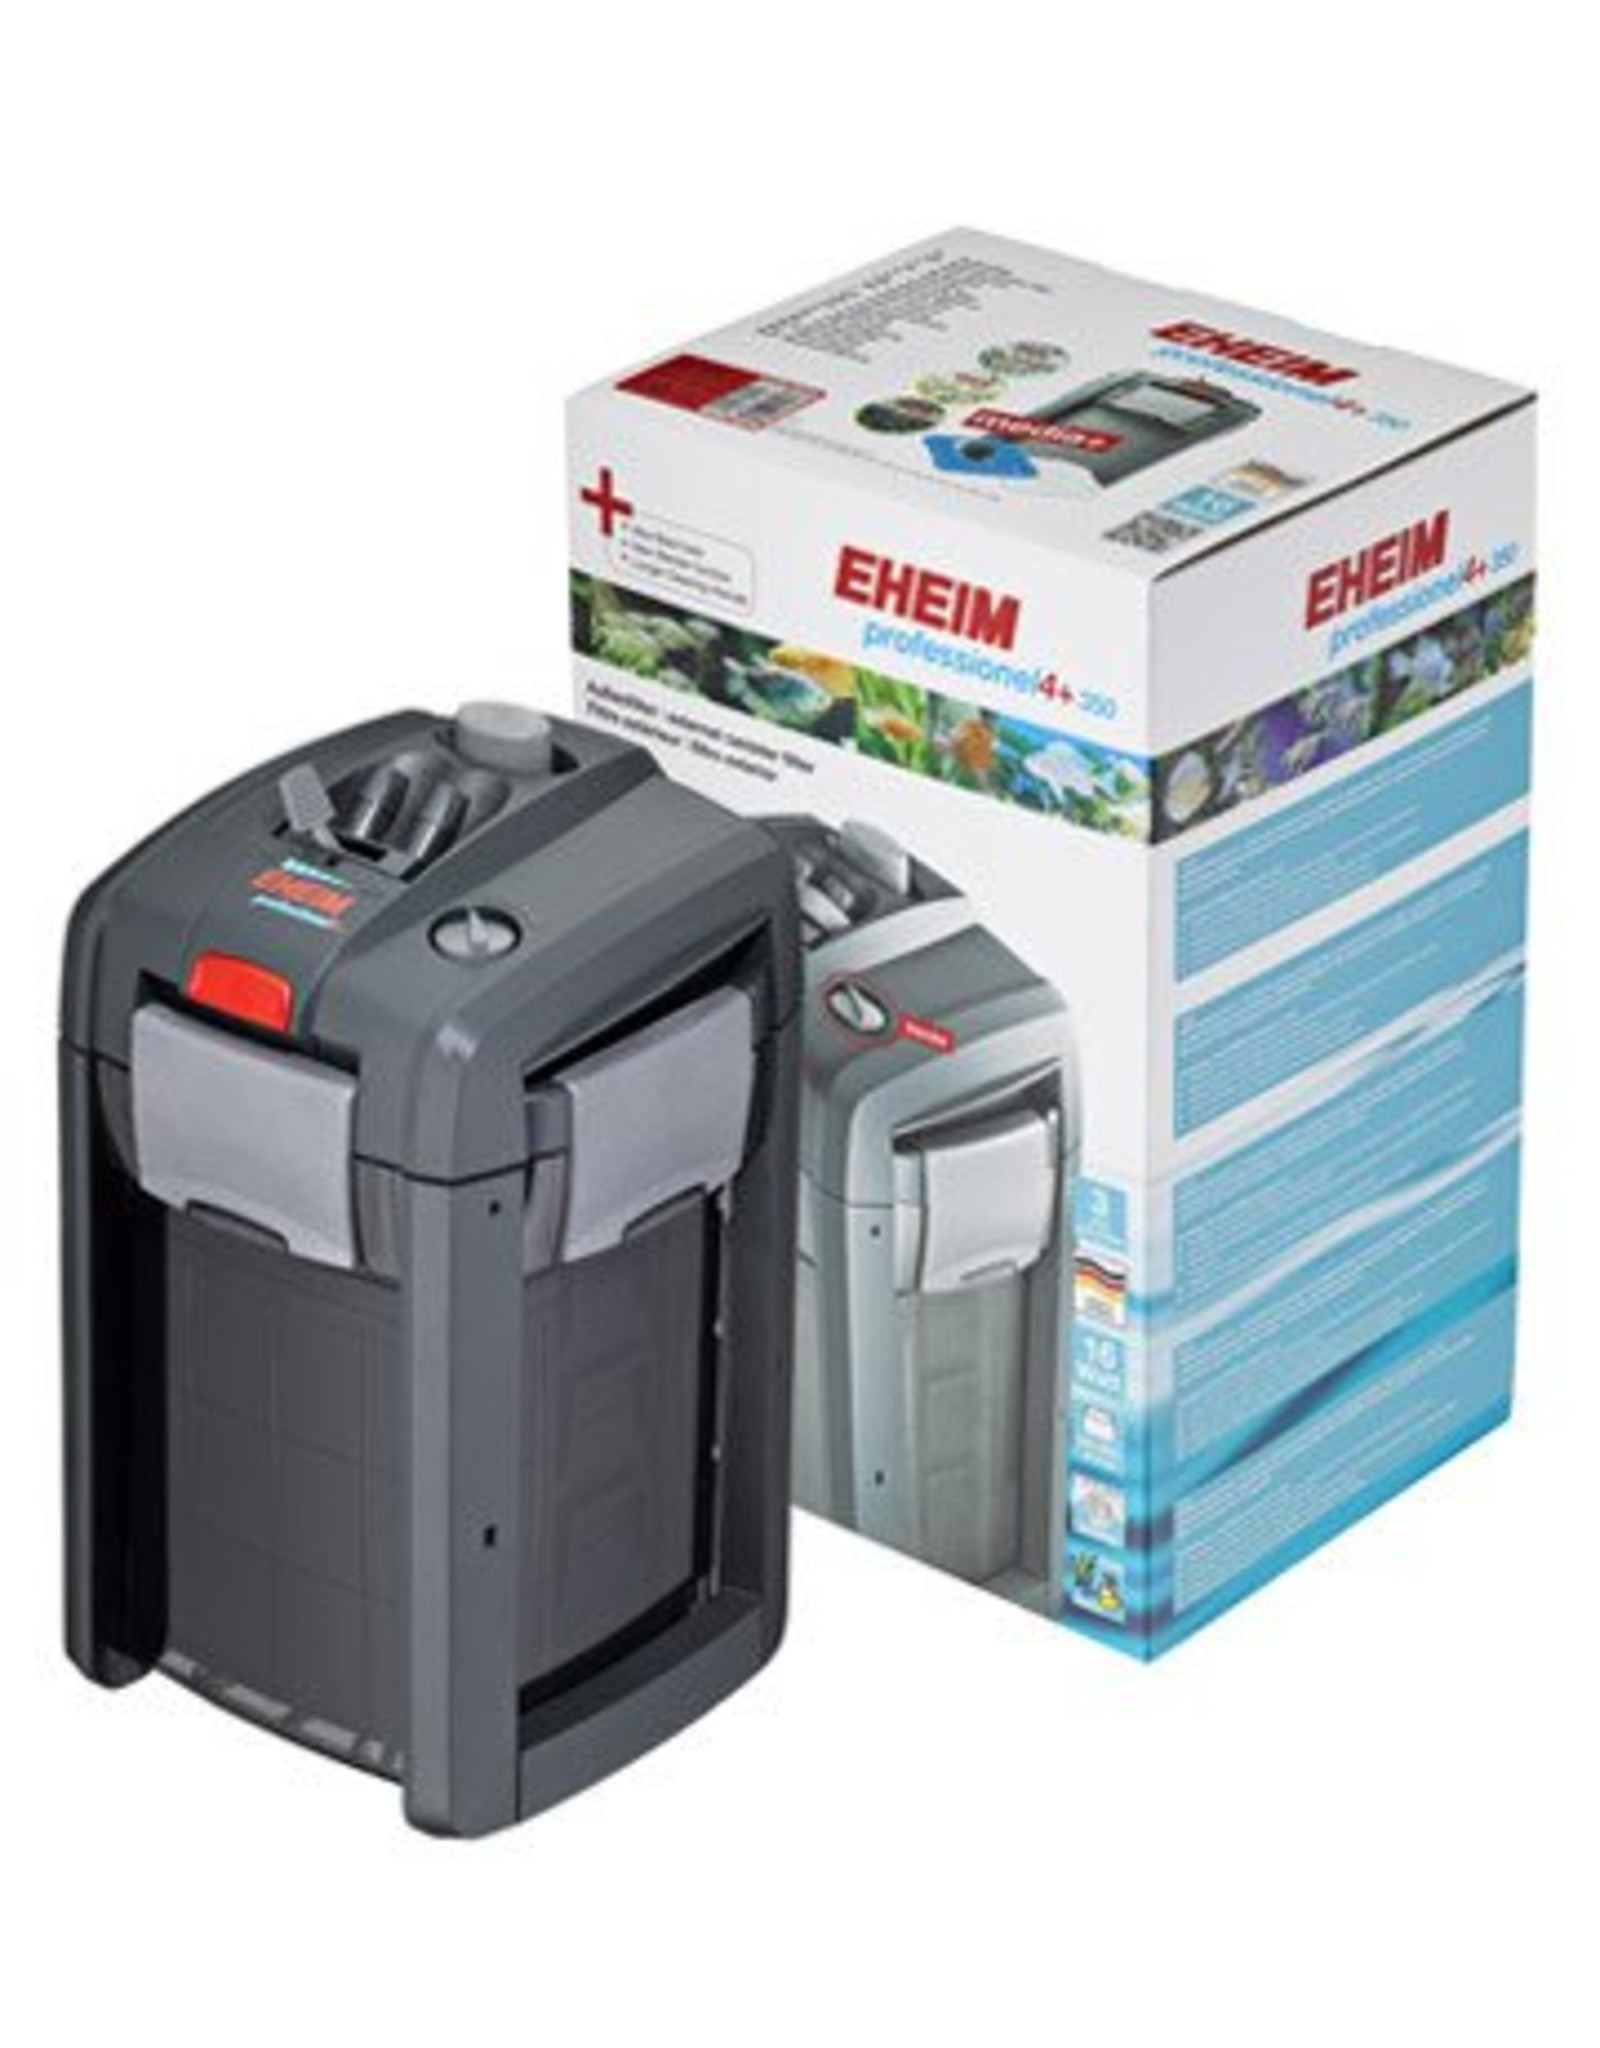 EHEIM Pro 4+ Canister Filter - 350